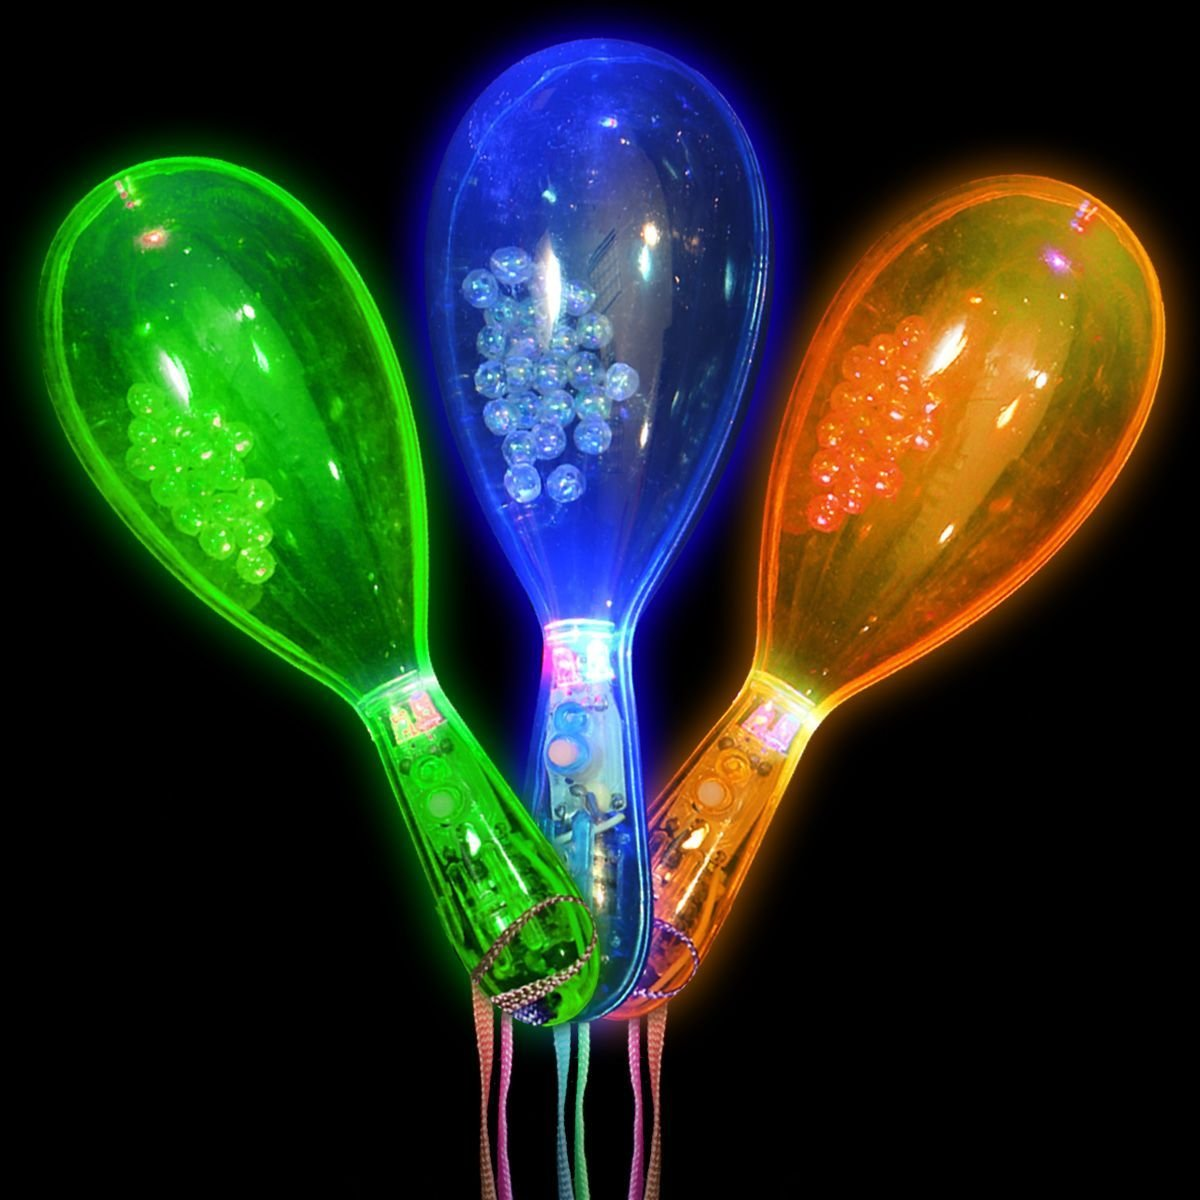 12 Pieces Flashing Light Maracas Maraca Dance Spanish Music Novelty Toy Noise Maker w/ Strap, Perfect for Party Favors, Goodie Bags (Colors May Vary) …